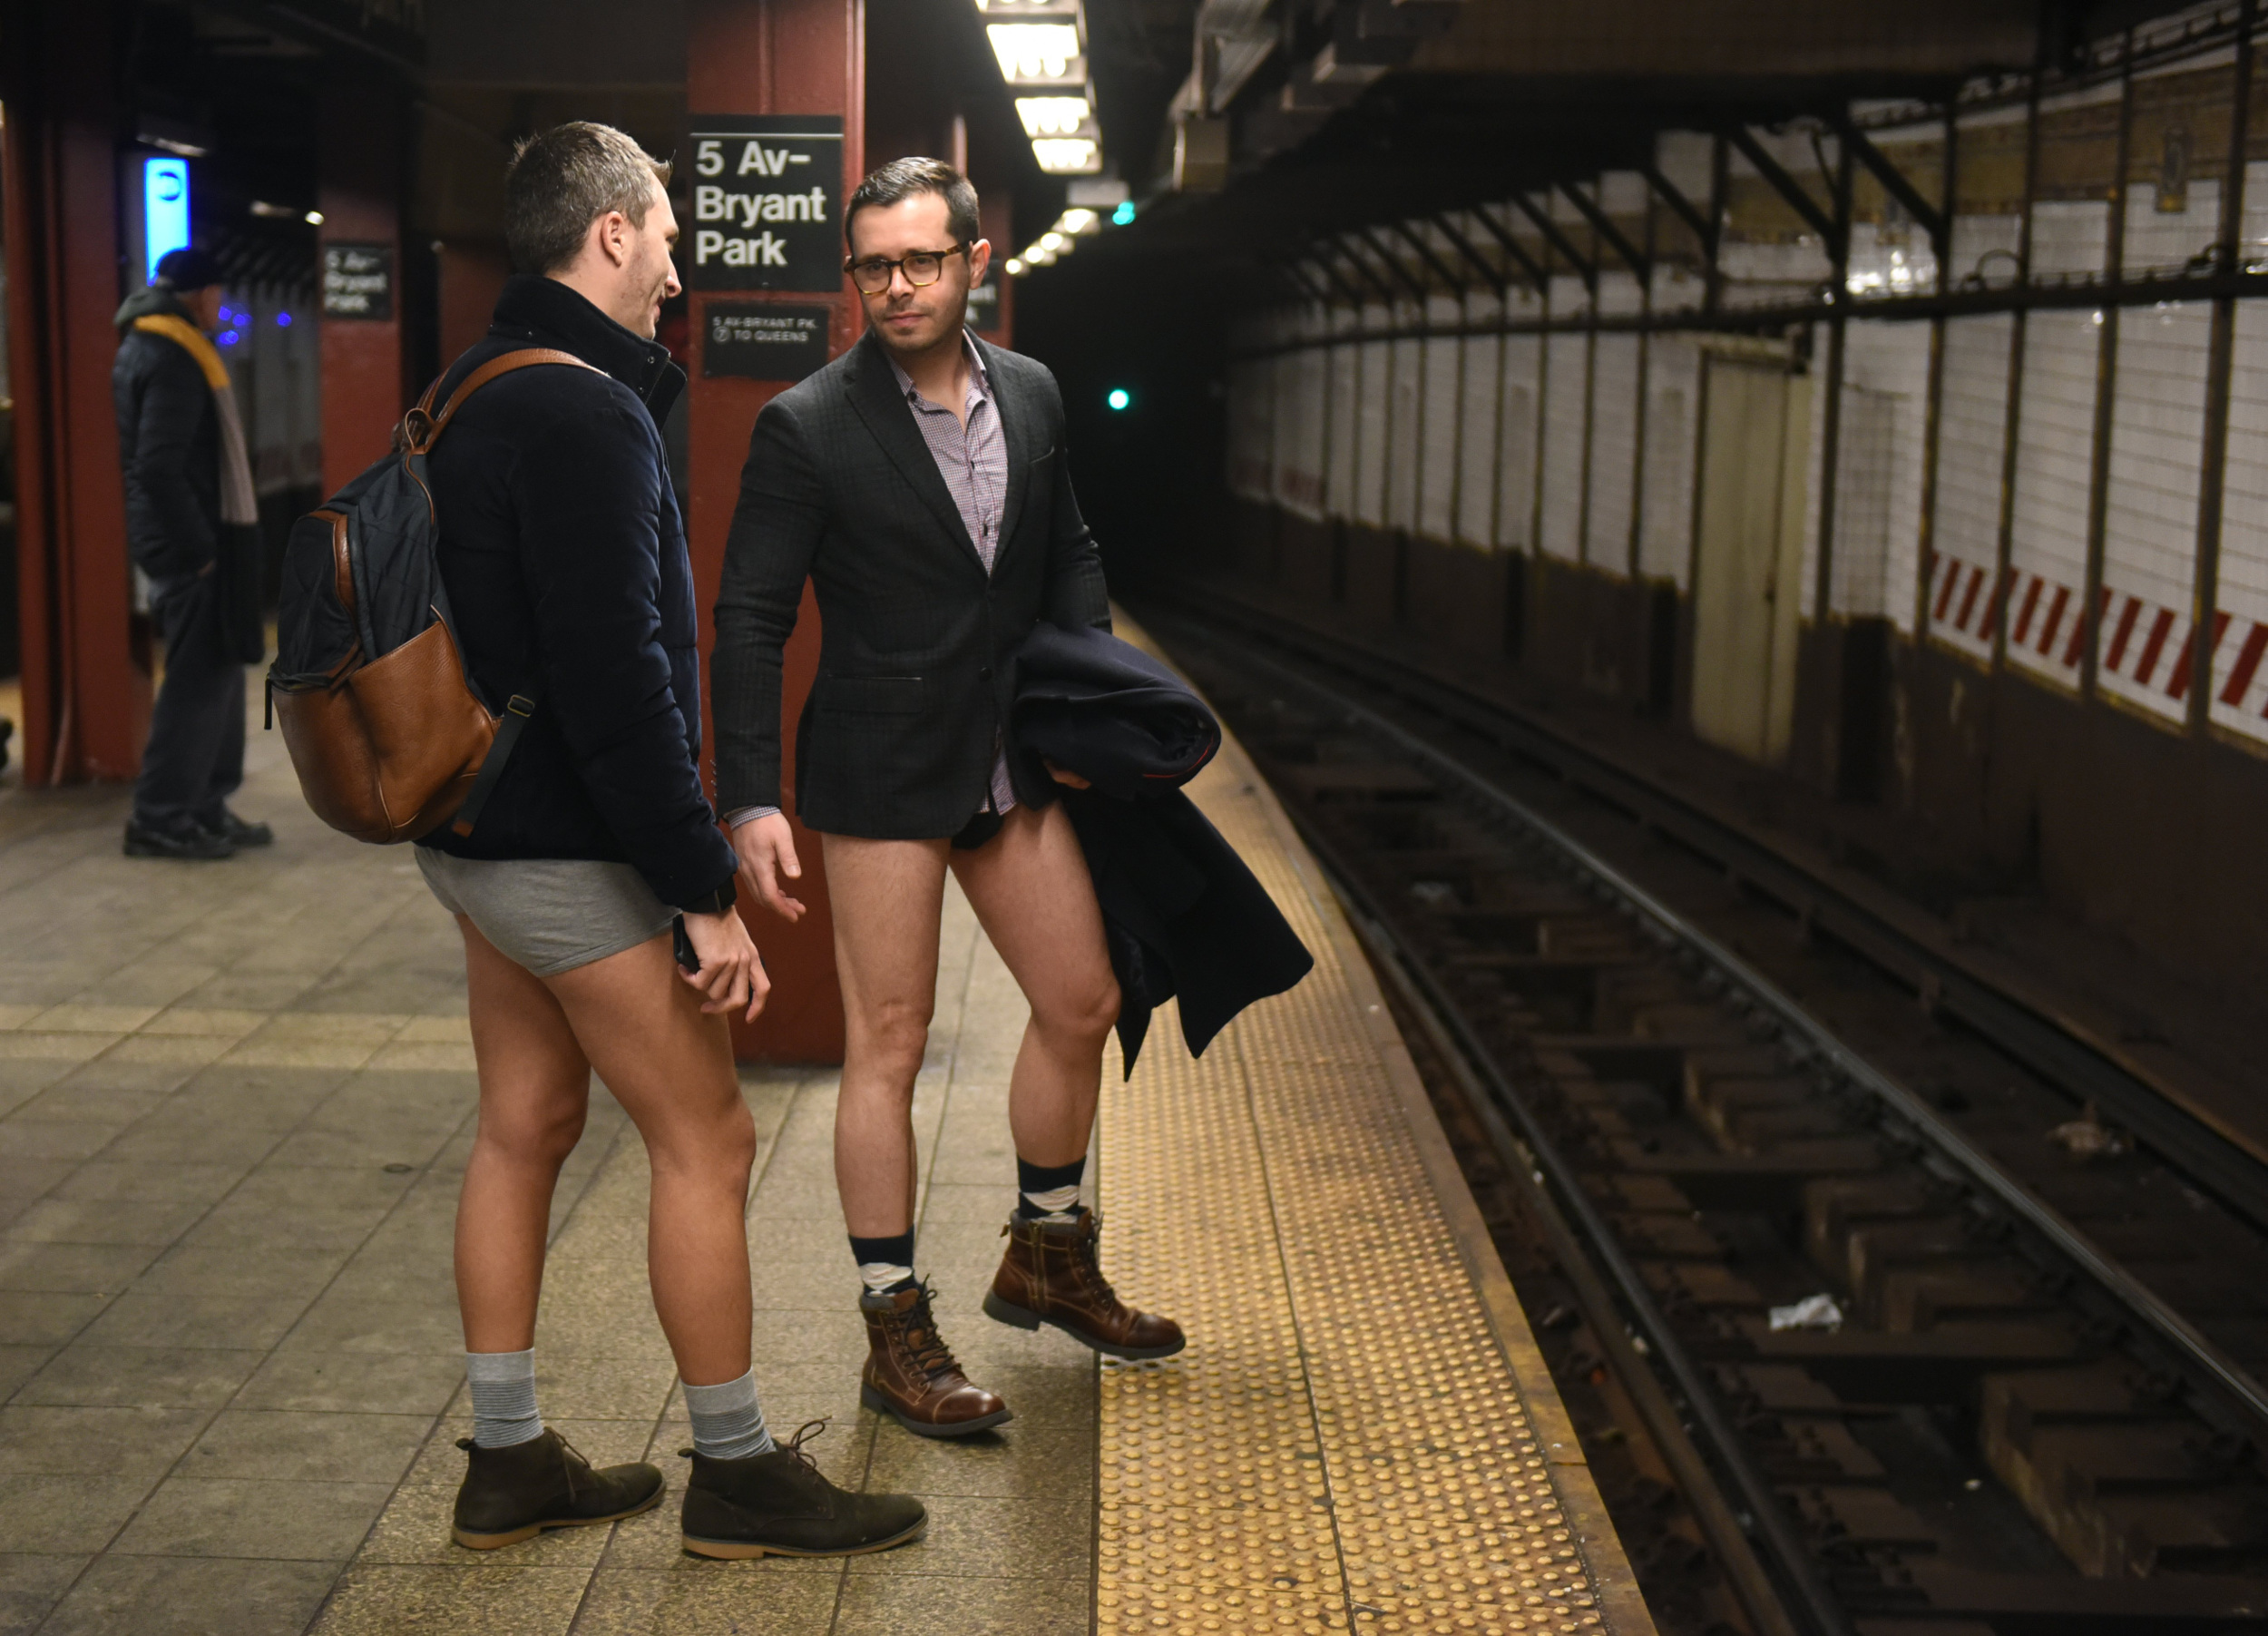 Approximately 4,000 people took part in this year's No Pants Subway Ride in New York City.